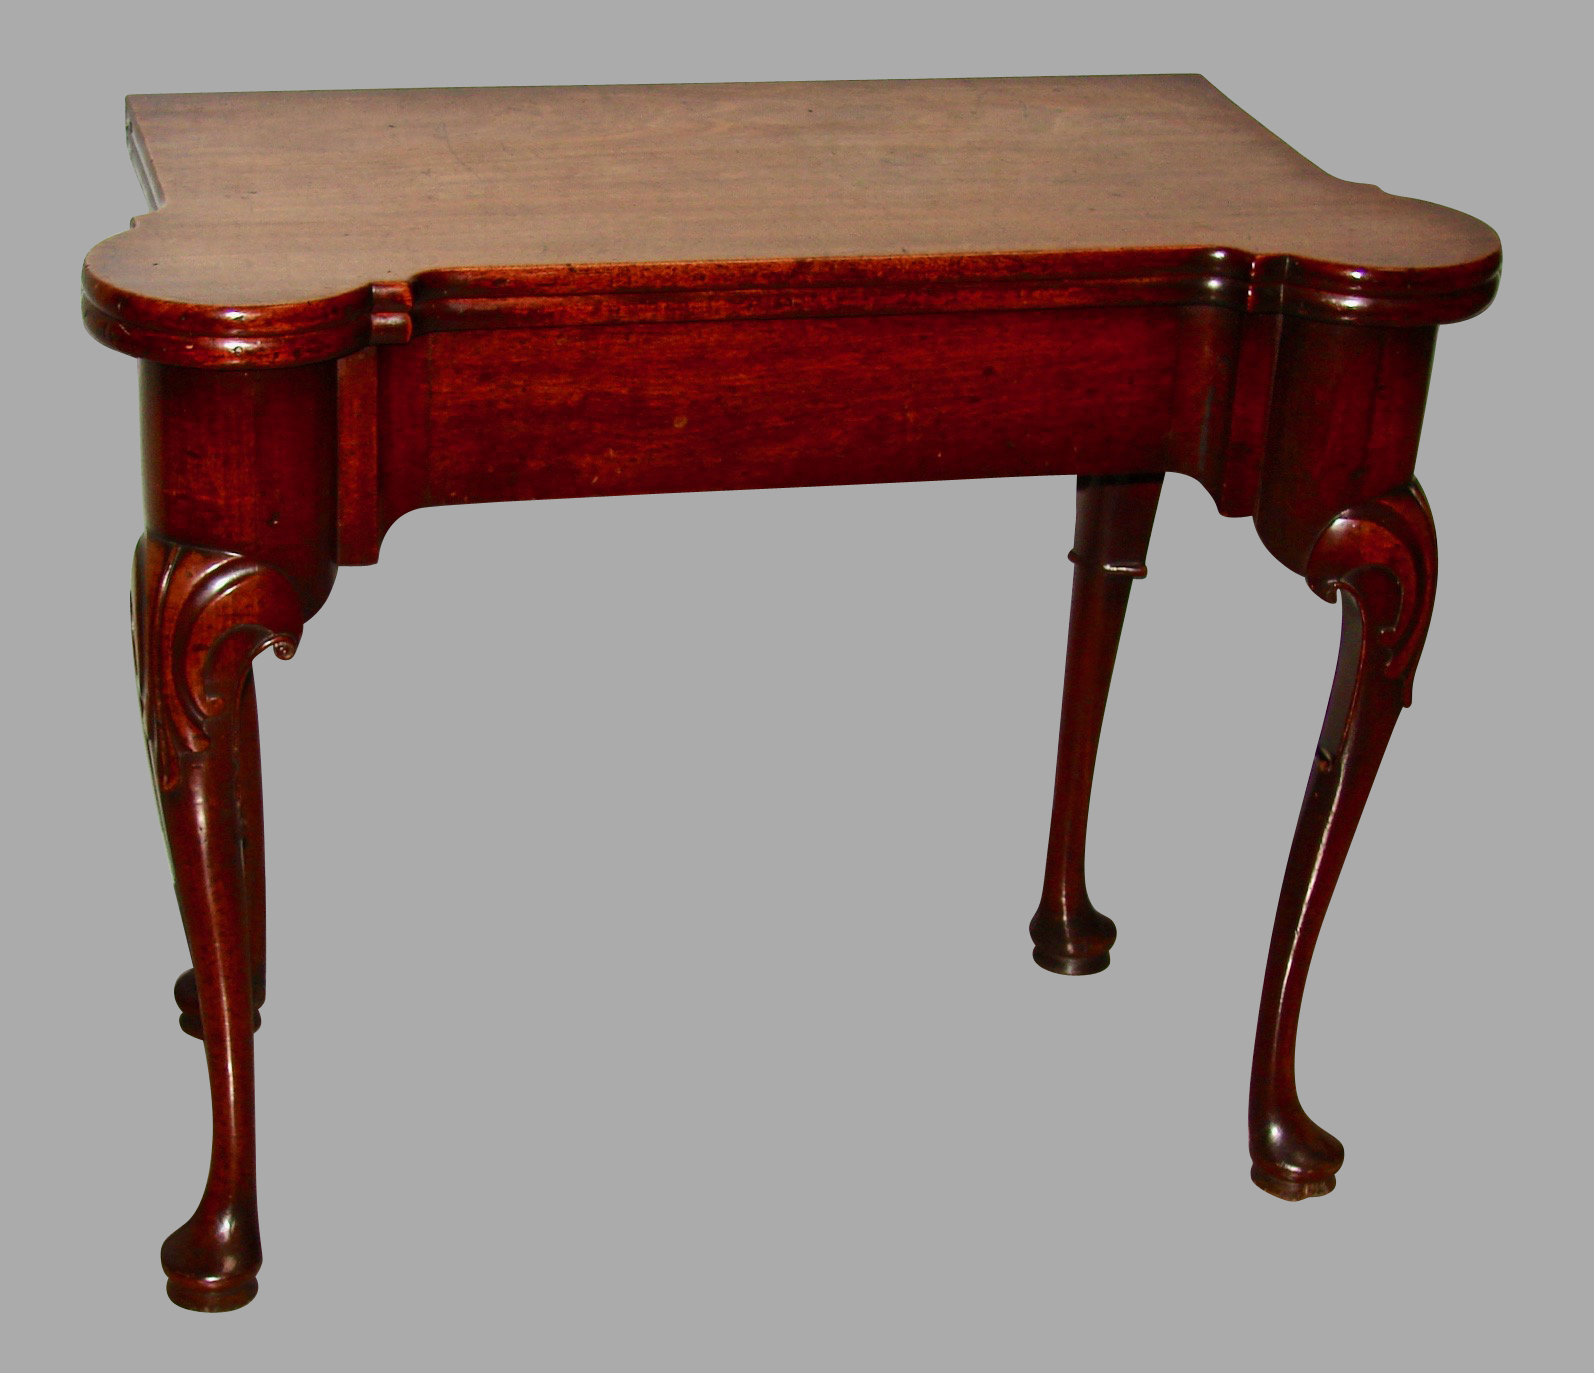 George II Mahogany Games Table with Concertina Action | DANIEL STEIN Antiques San Francisco CA